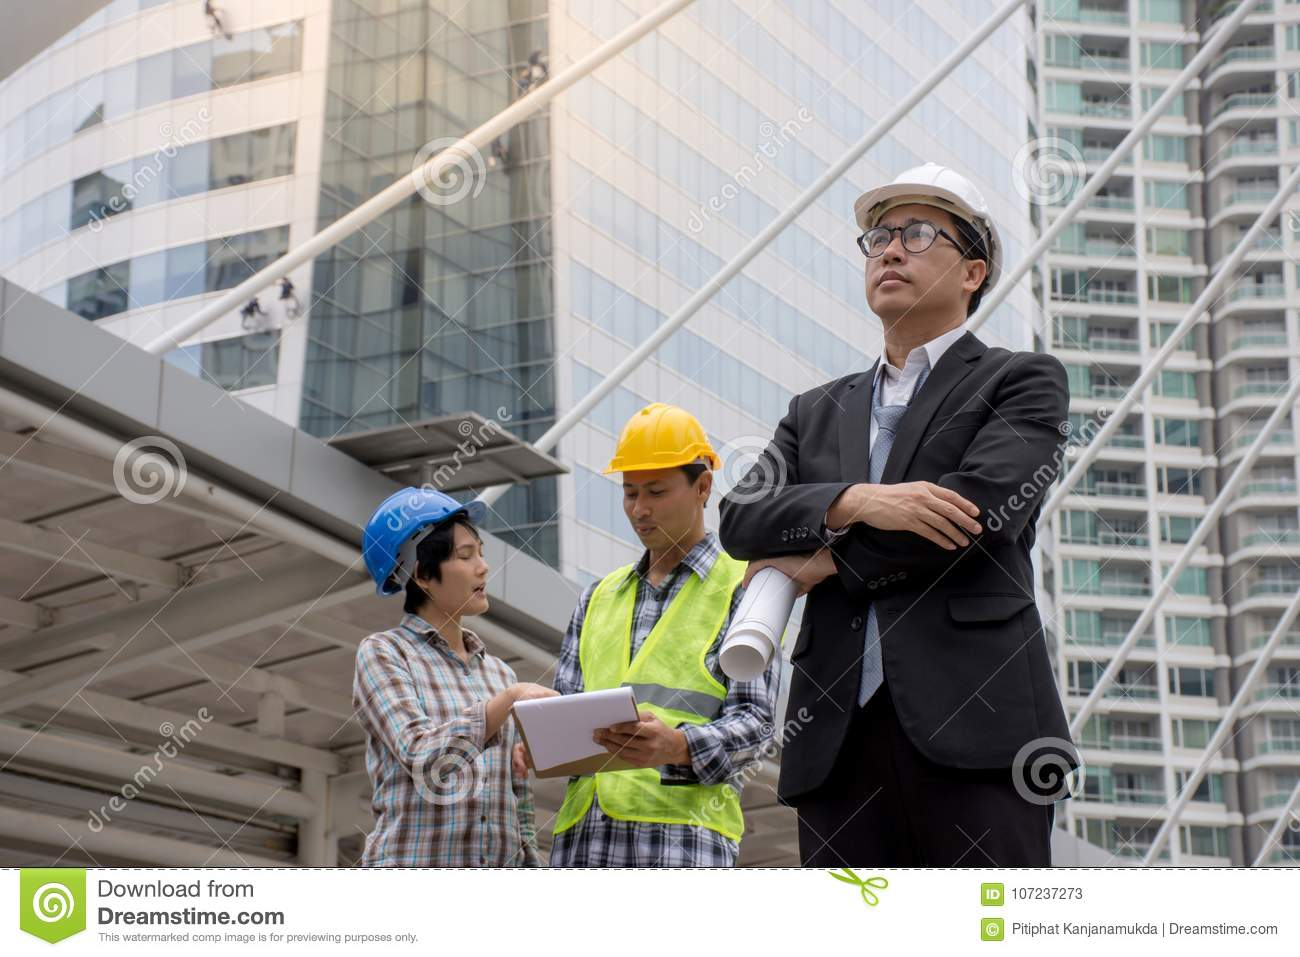 Portrait of a Asian serious engineer wearing safety helmet architects discussing construction plan